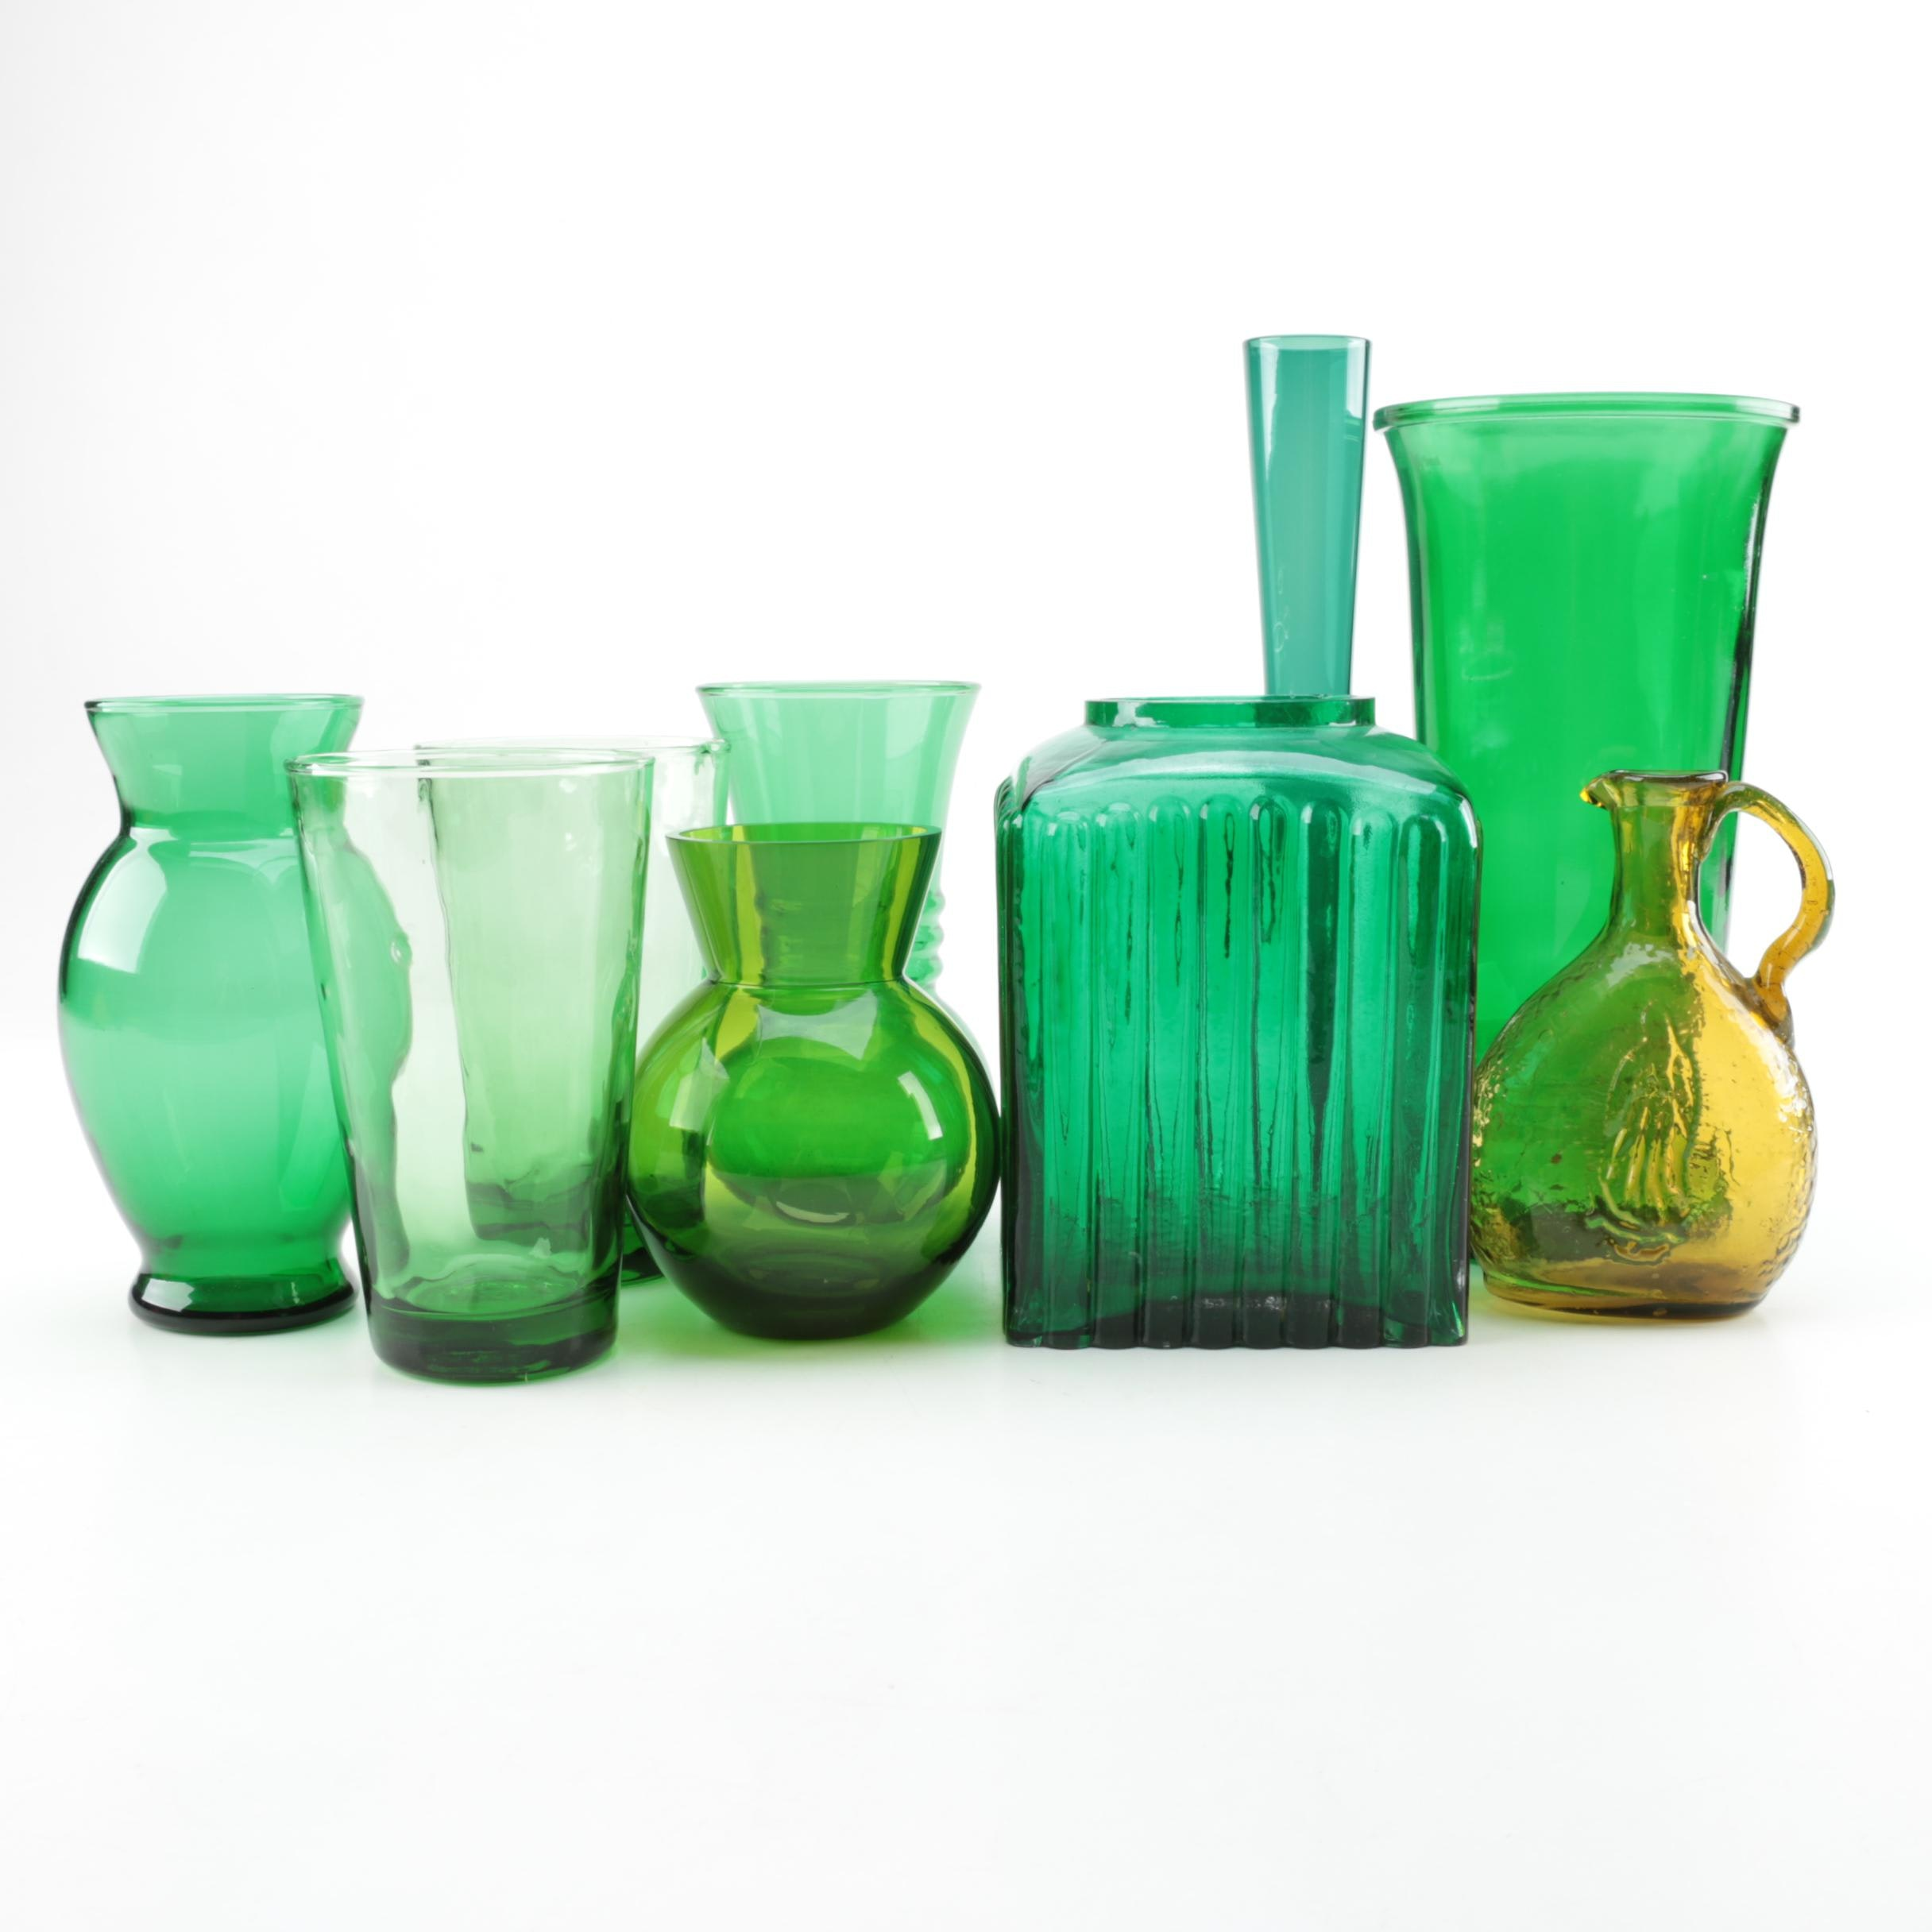 Green Glassware and Vases Including Libbey